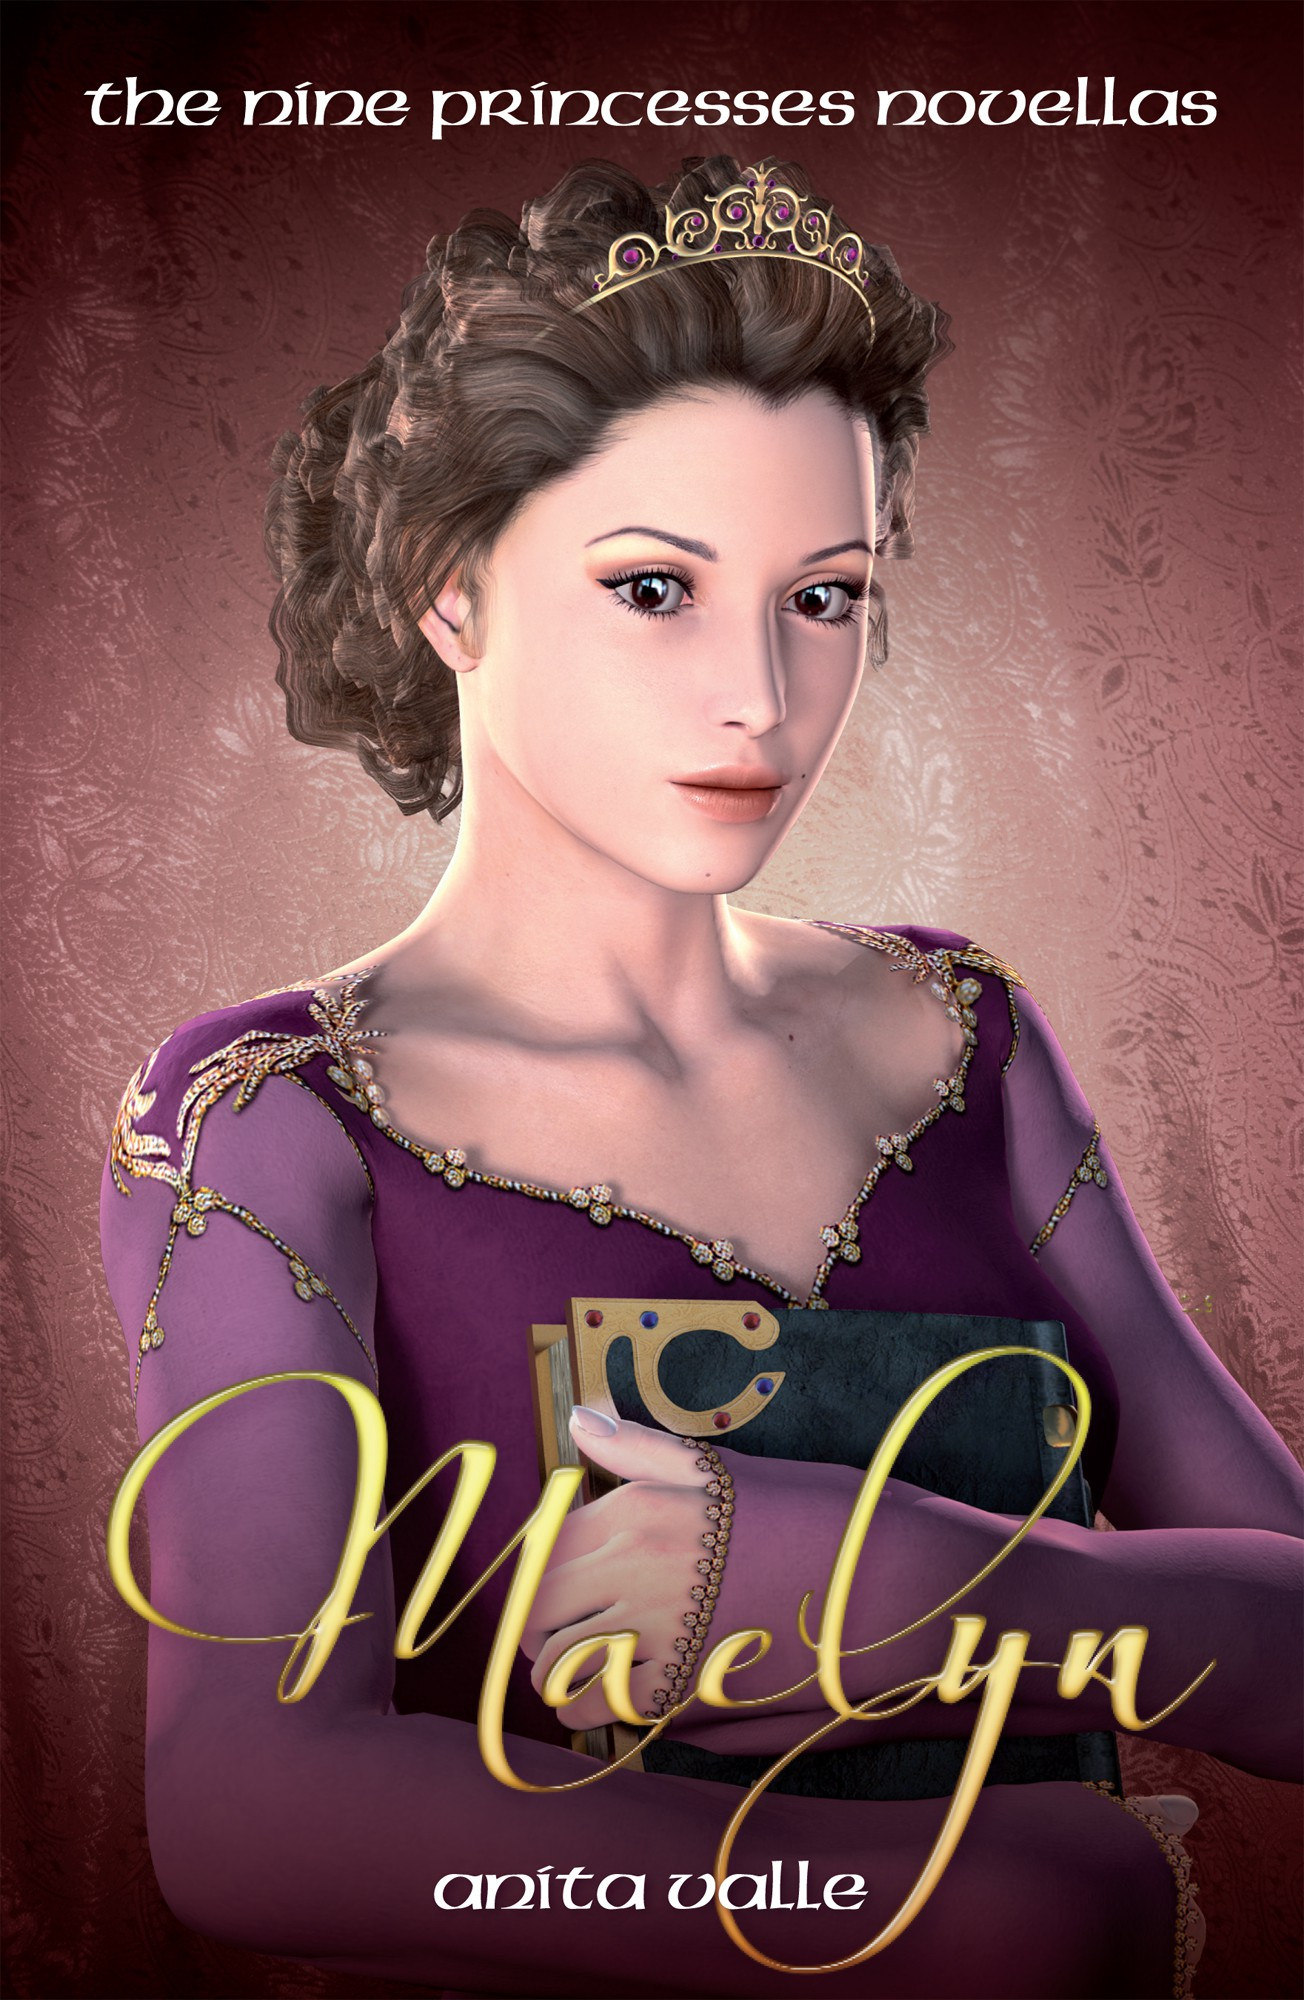 Design a cover for a Young-Adult novella featuring a Princess.